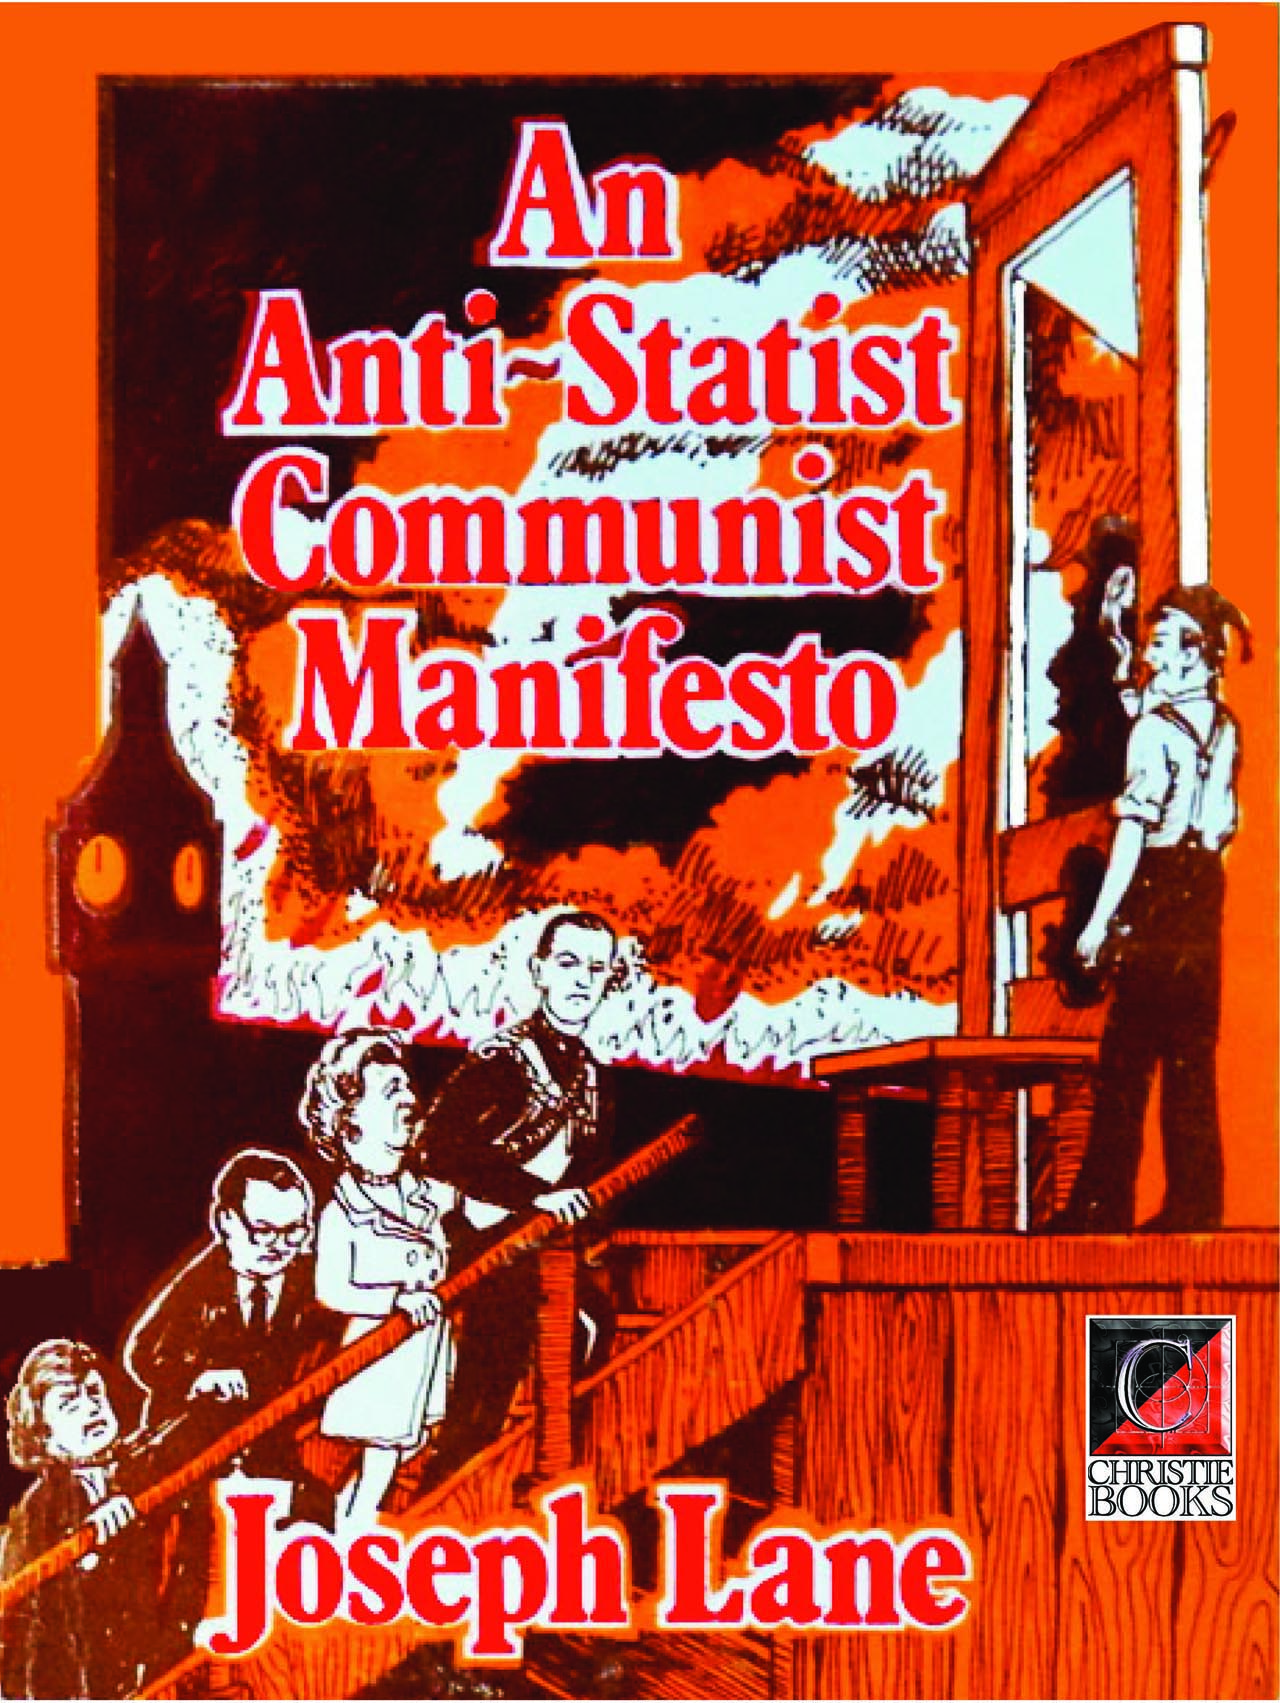 An Anti-Statist Communist Manifesto